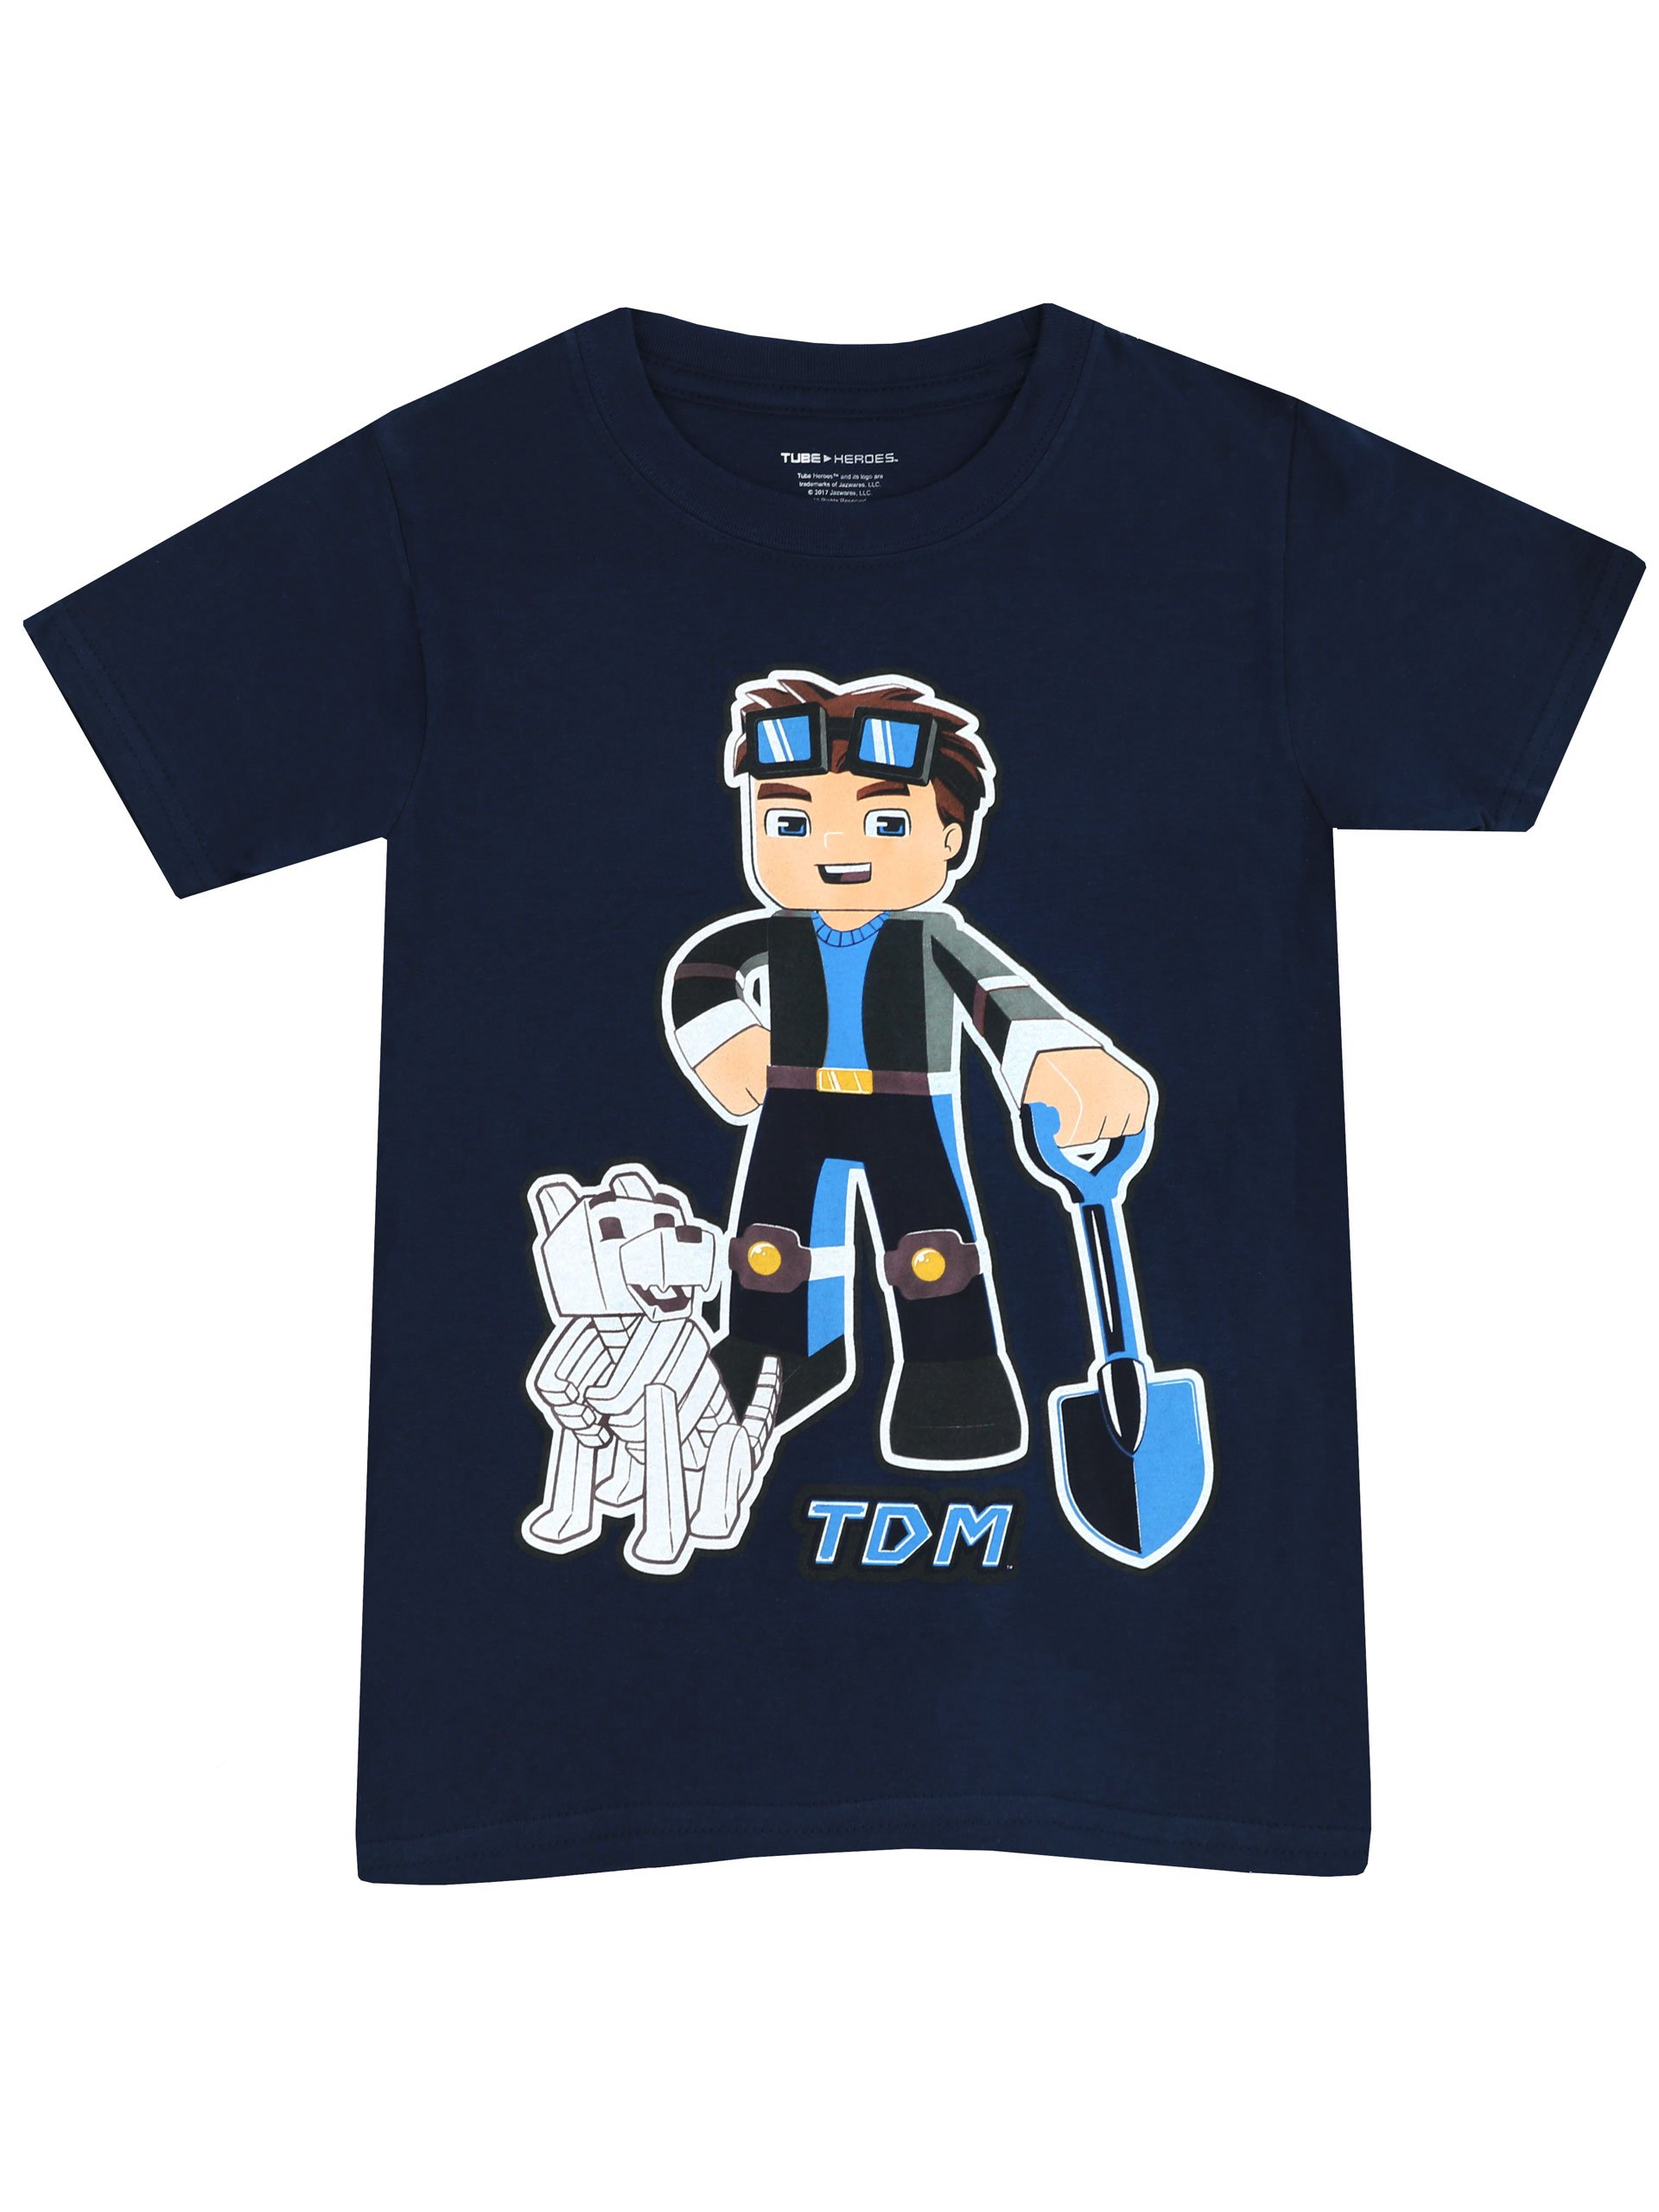 Dan TDM You Tube Heroes Pyjamas The Diamond Minecart 7 to 13 Years